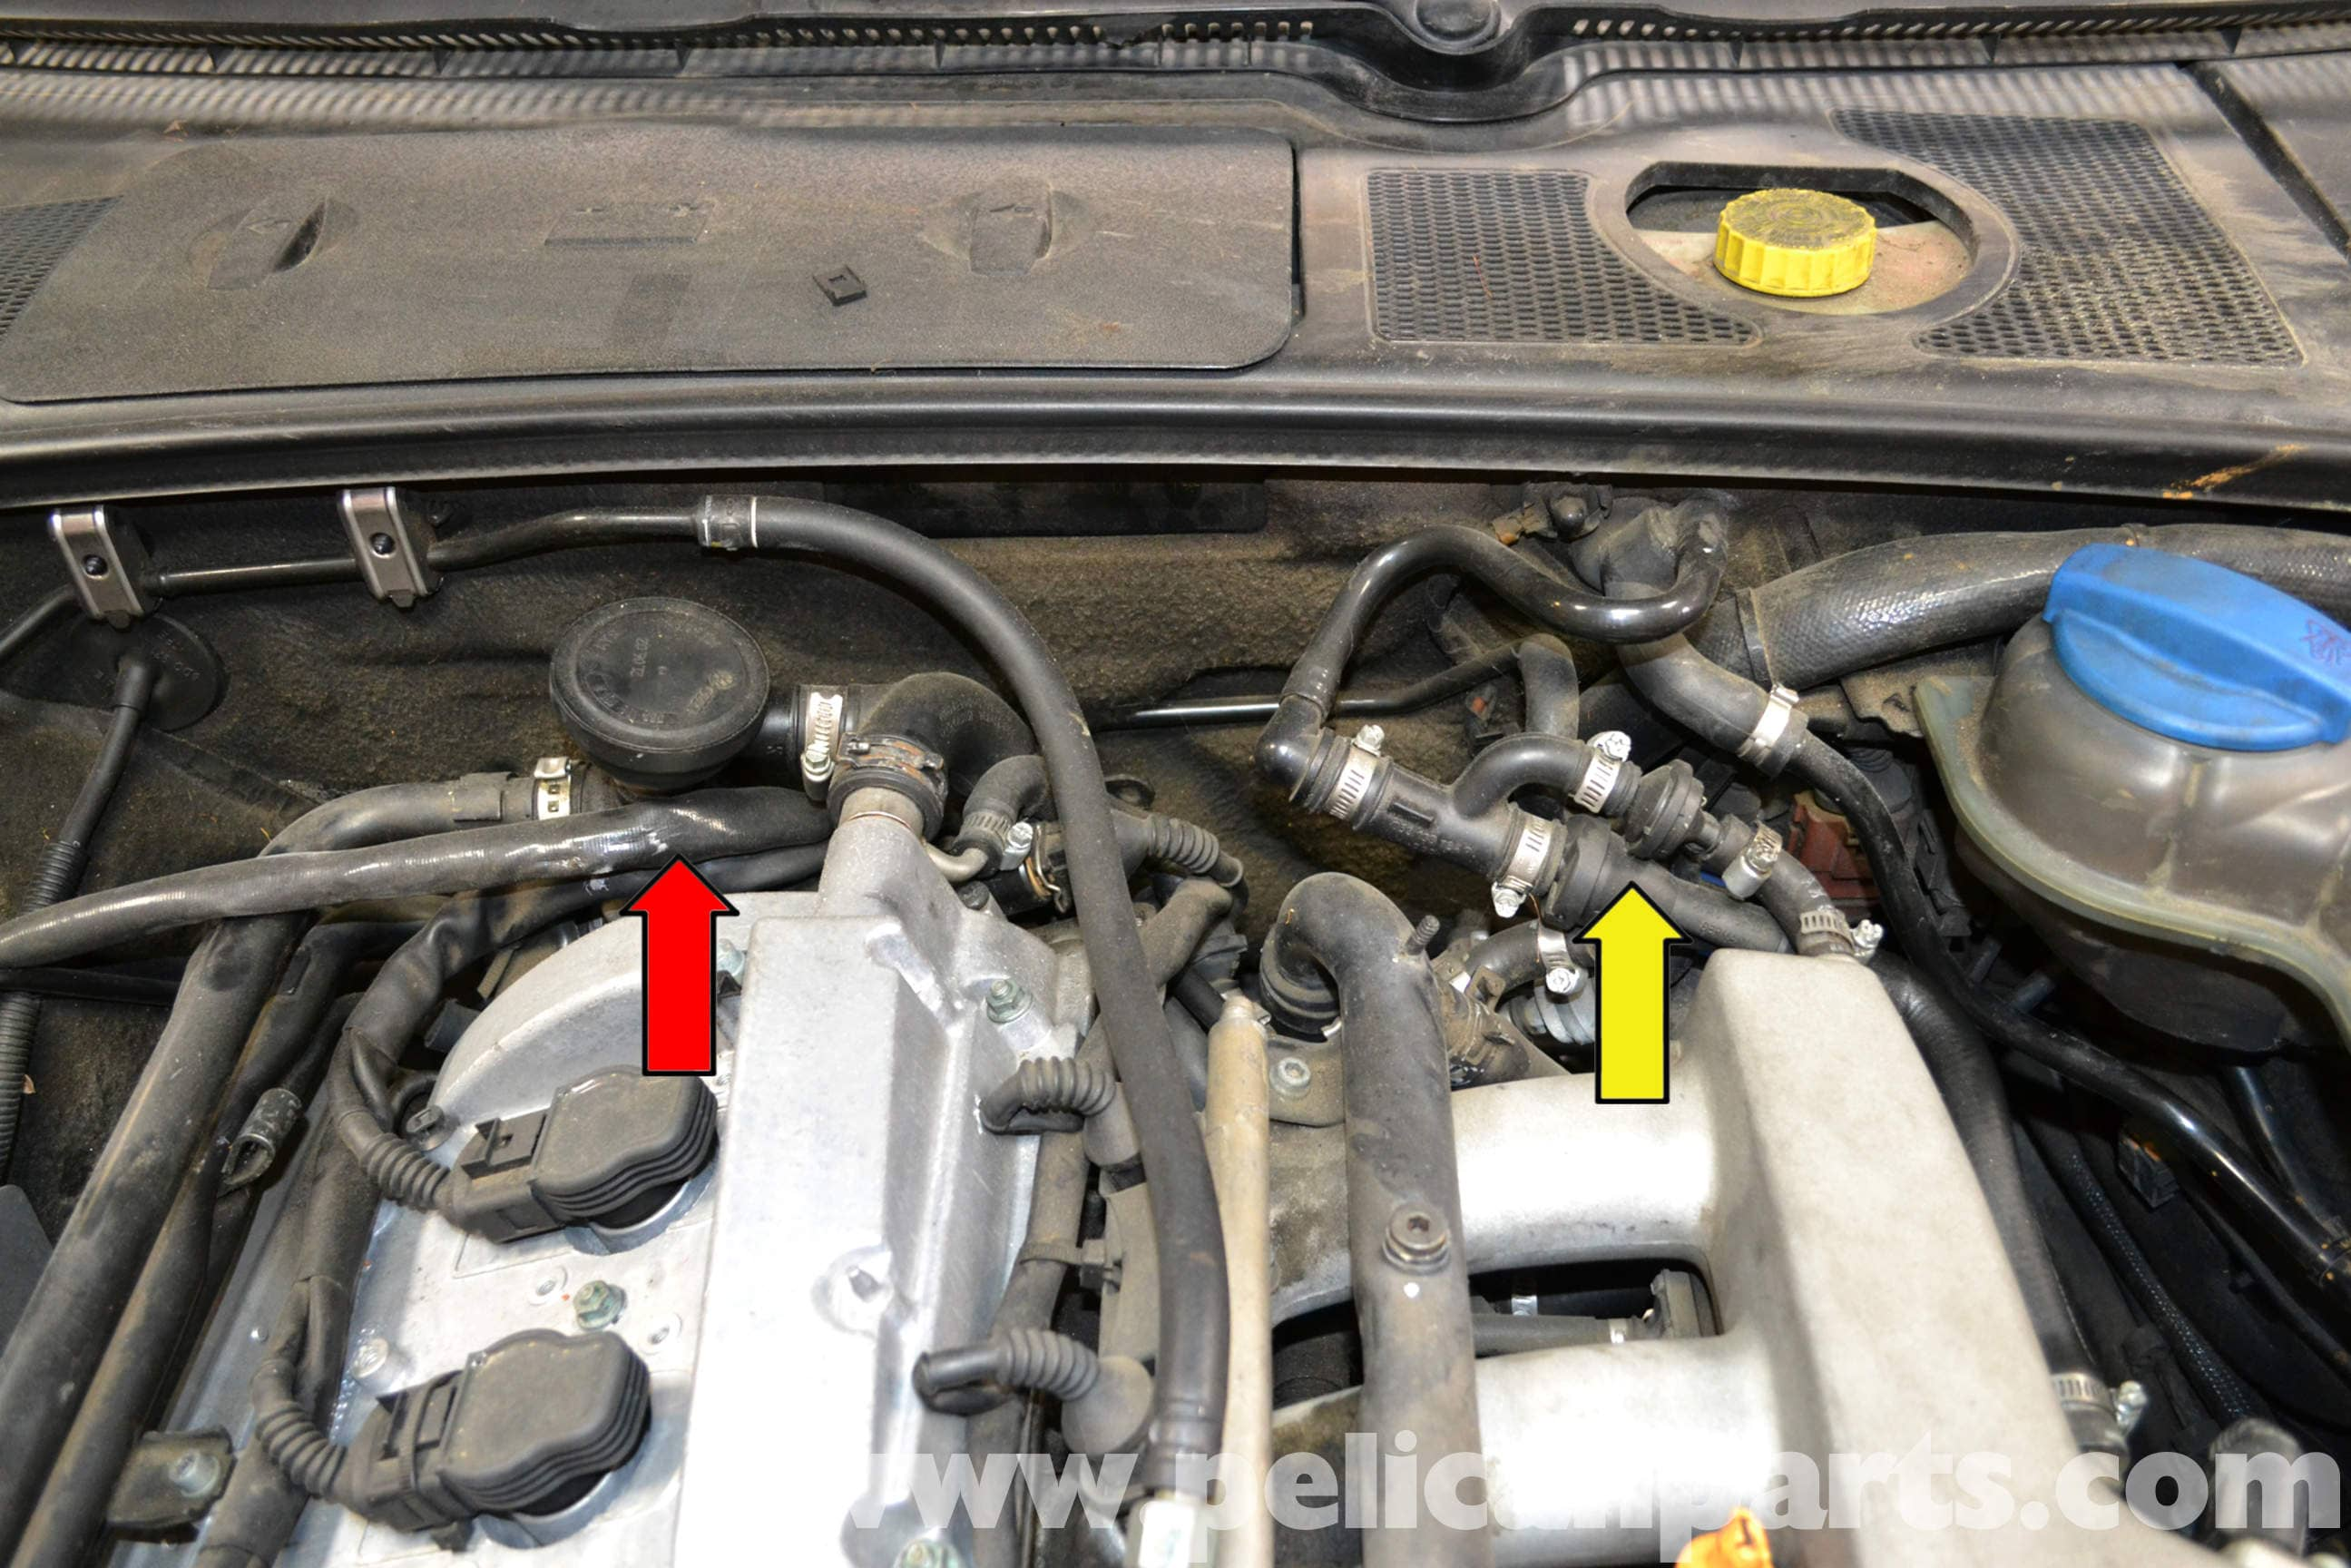 how to change oil 2008 audi tt 3.2